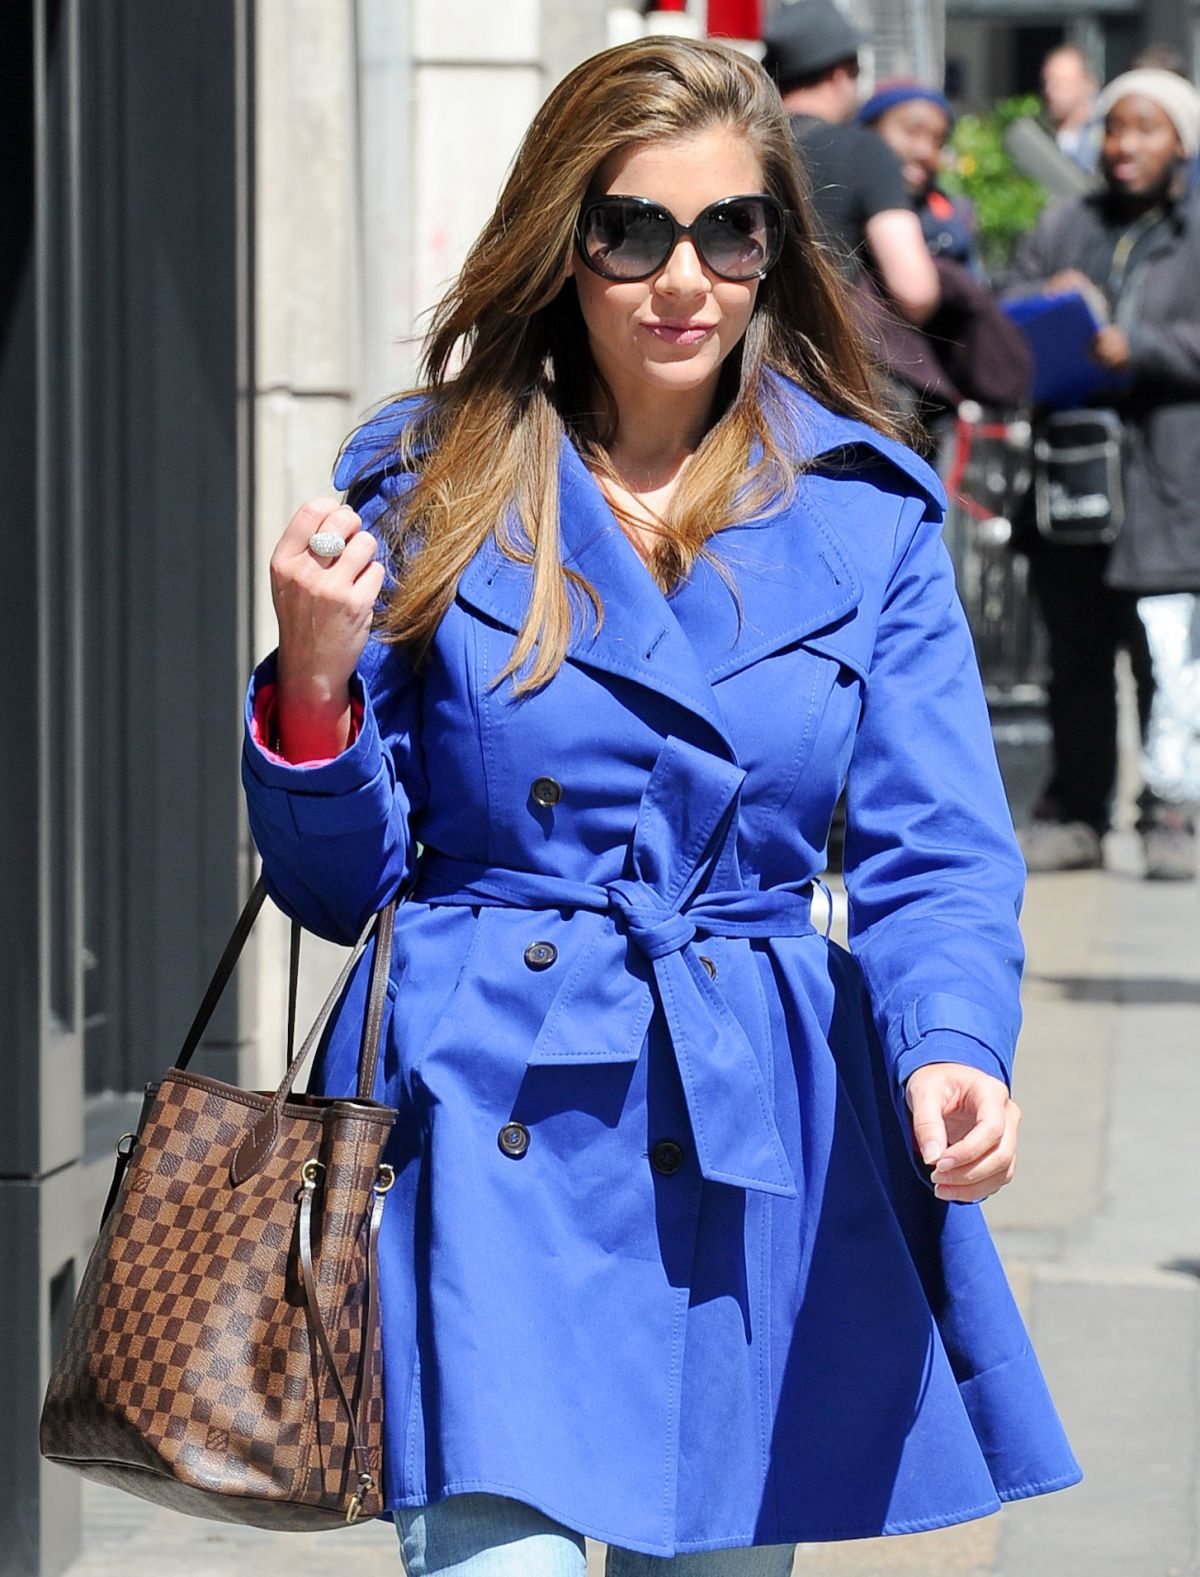 IMOGEN THOMAS Out and About in London 04/30/2015